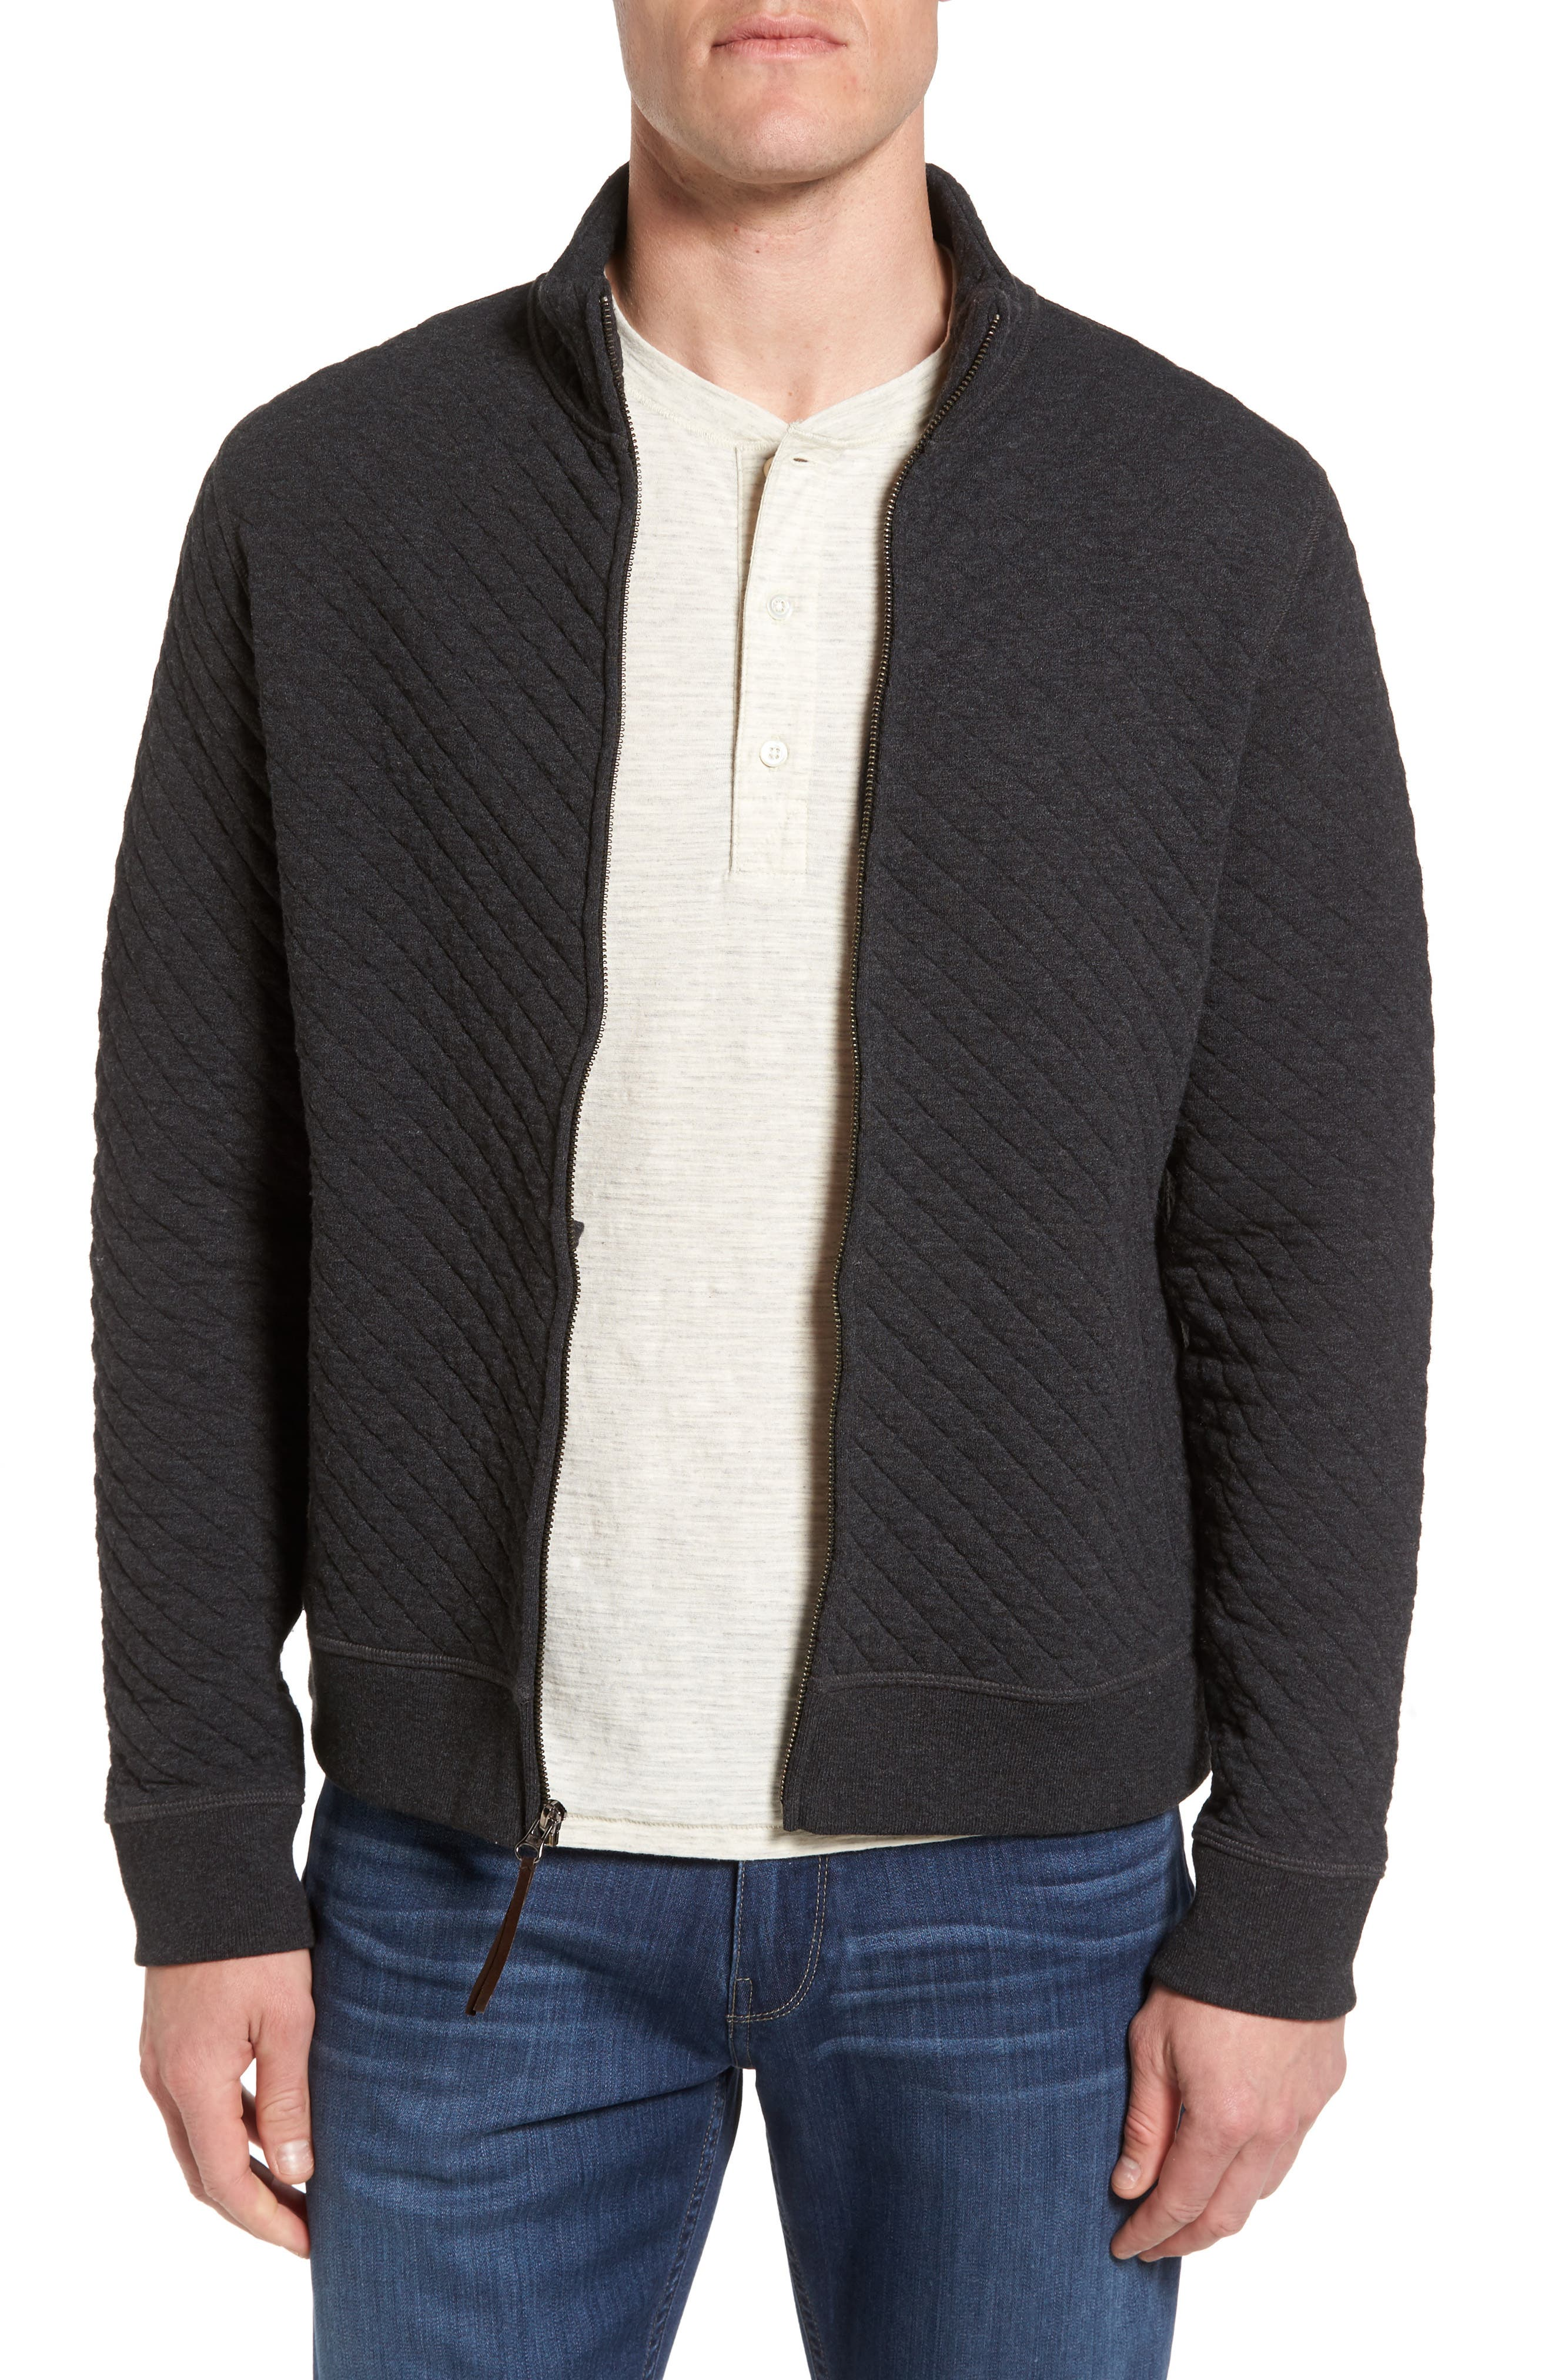 Diamond Quilted Jacket,                             Main thumbnail 1, color,                             020